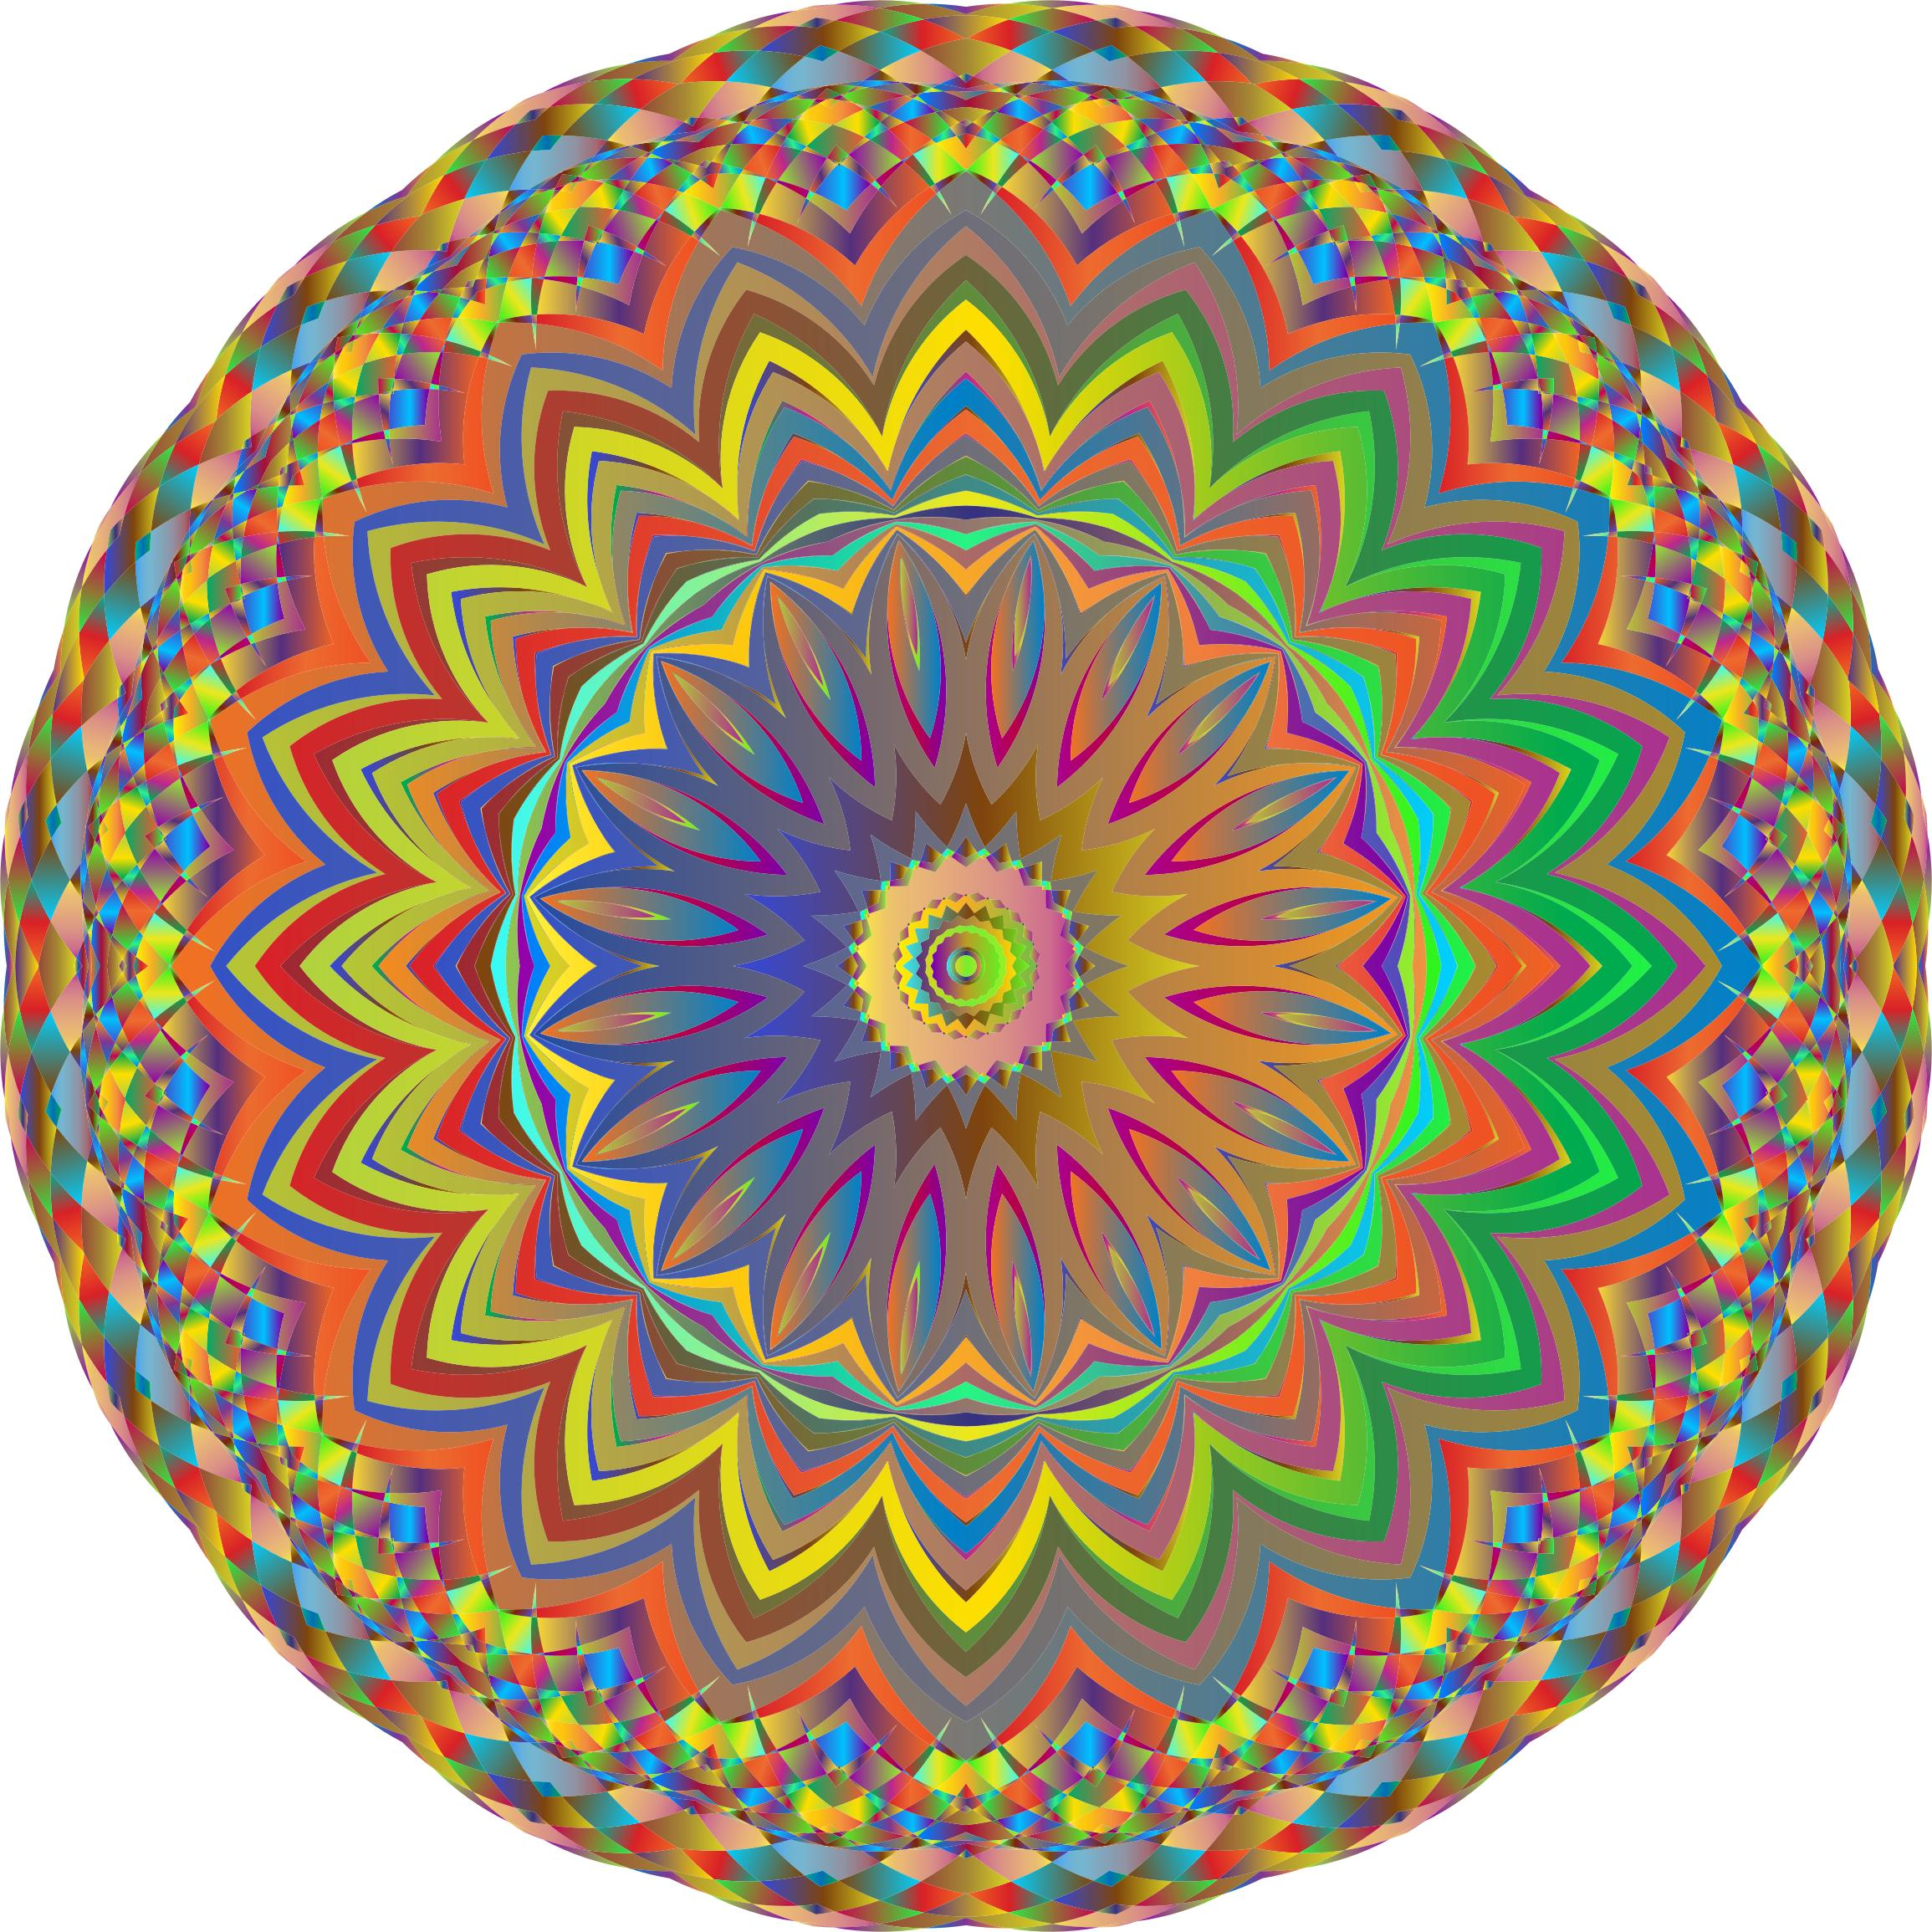 Free mandala icons png, MANDALA images - 12 - Free PNG and Icons ...